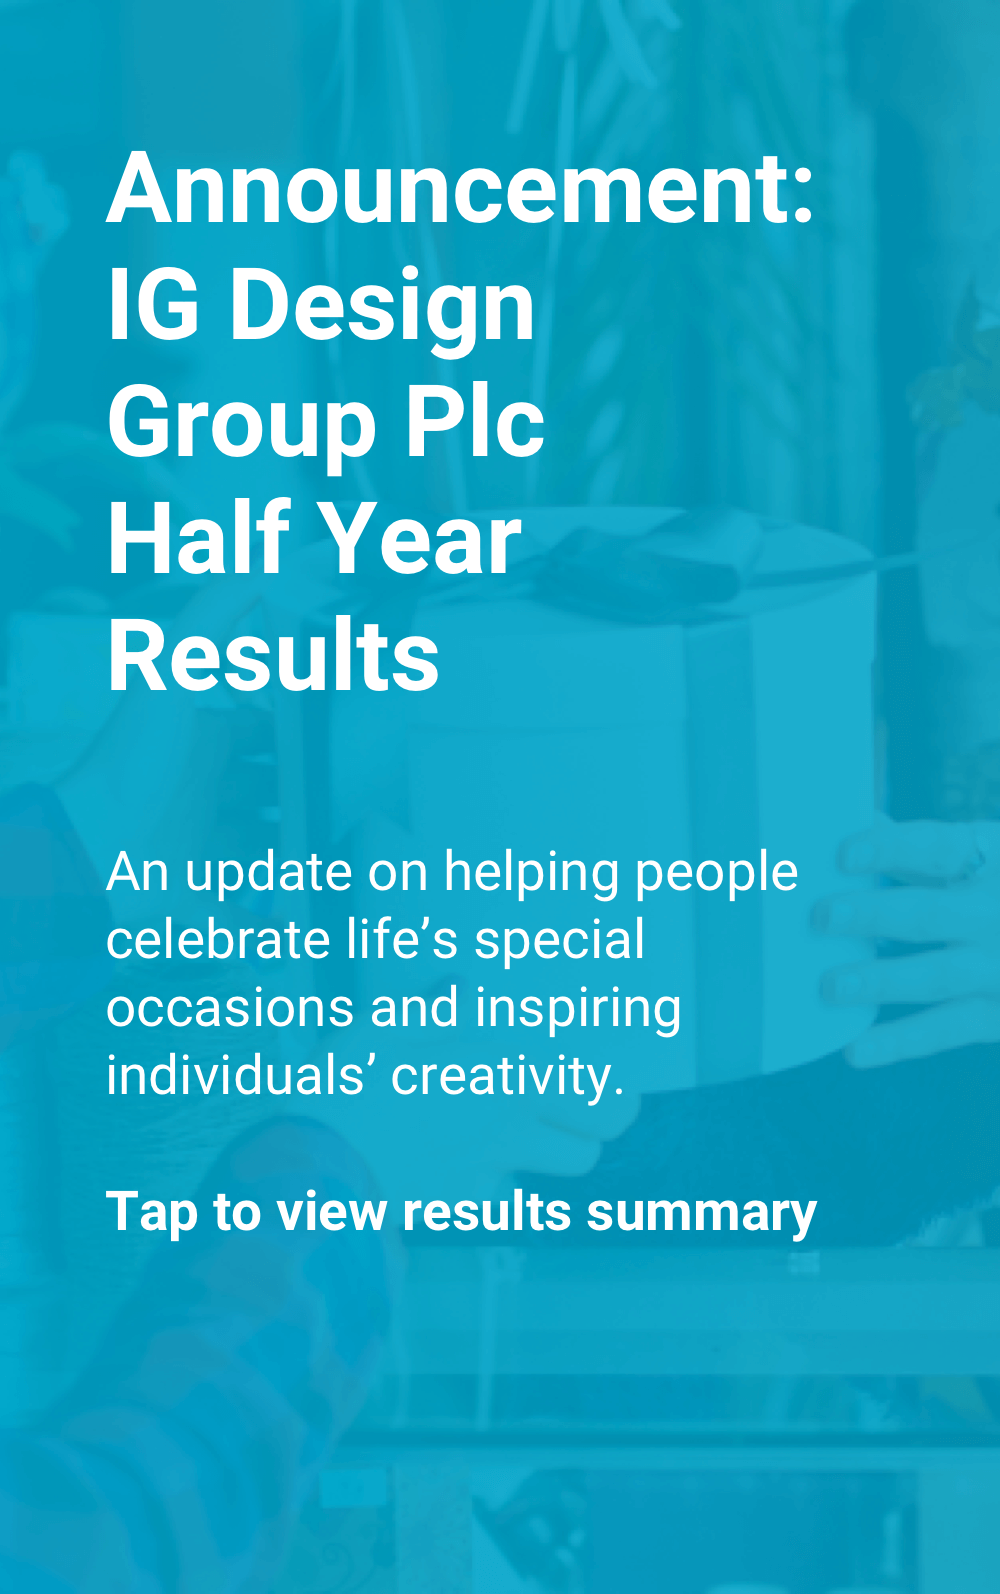 Announcement: IG Design Group Plc Half Year Results. An update on helping people celebrate life's special occasions and inspiring individuals' creativity. Tap to view results summary.